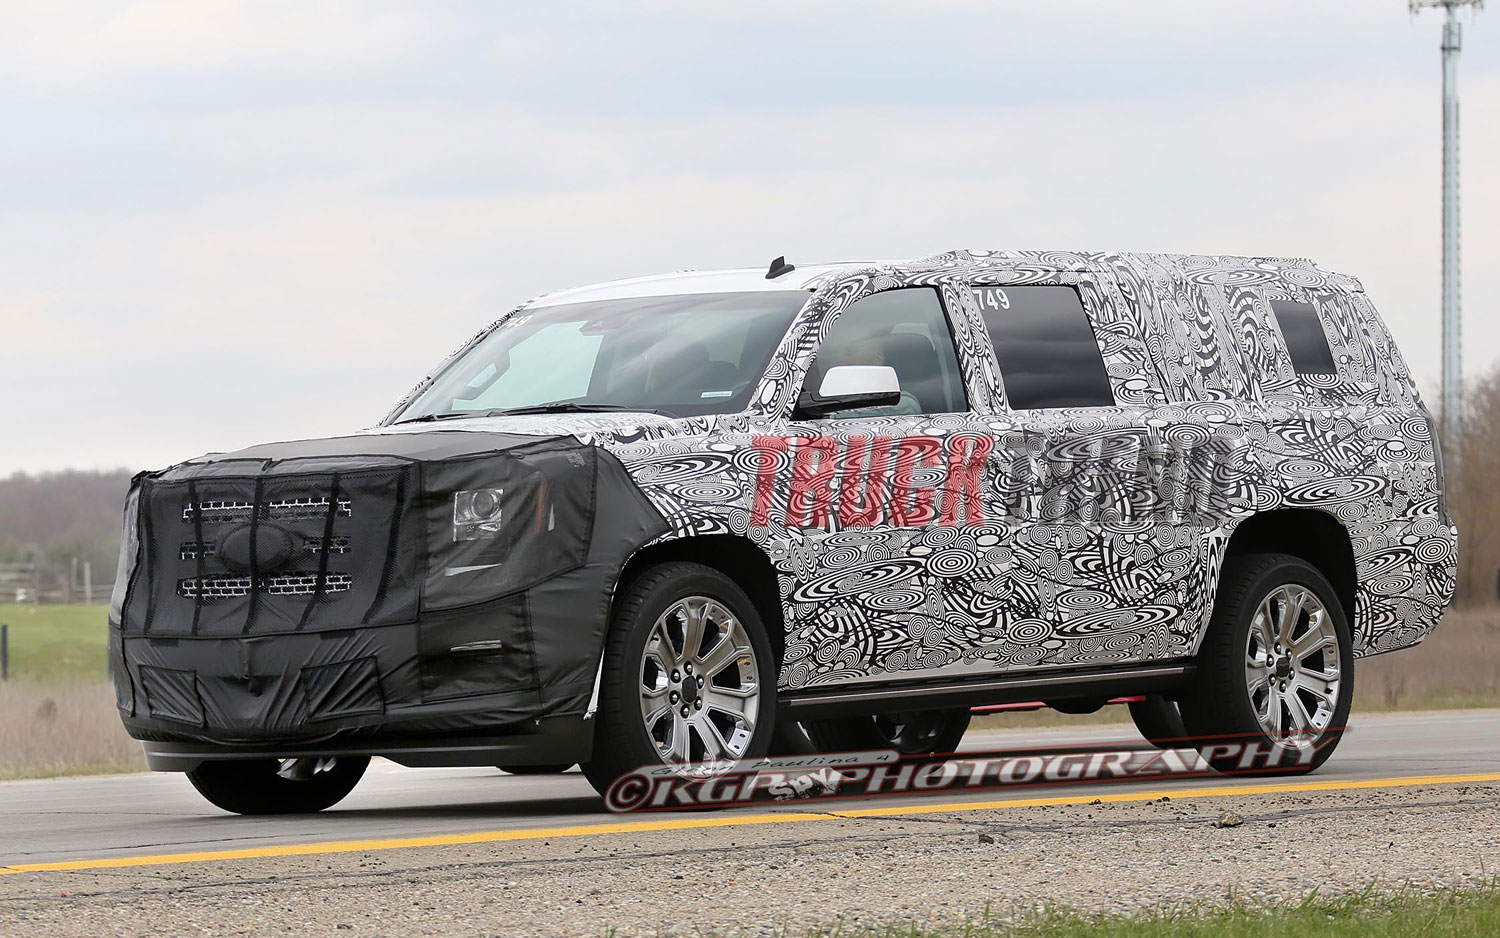 2015 GMC Yukon, XL Denali, and Chevrolet Tahoe Spied!